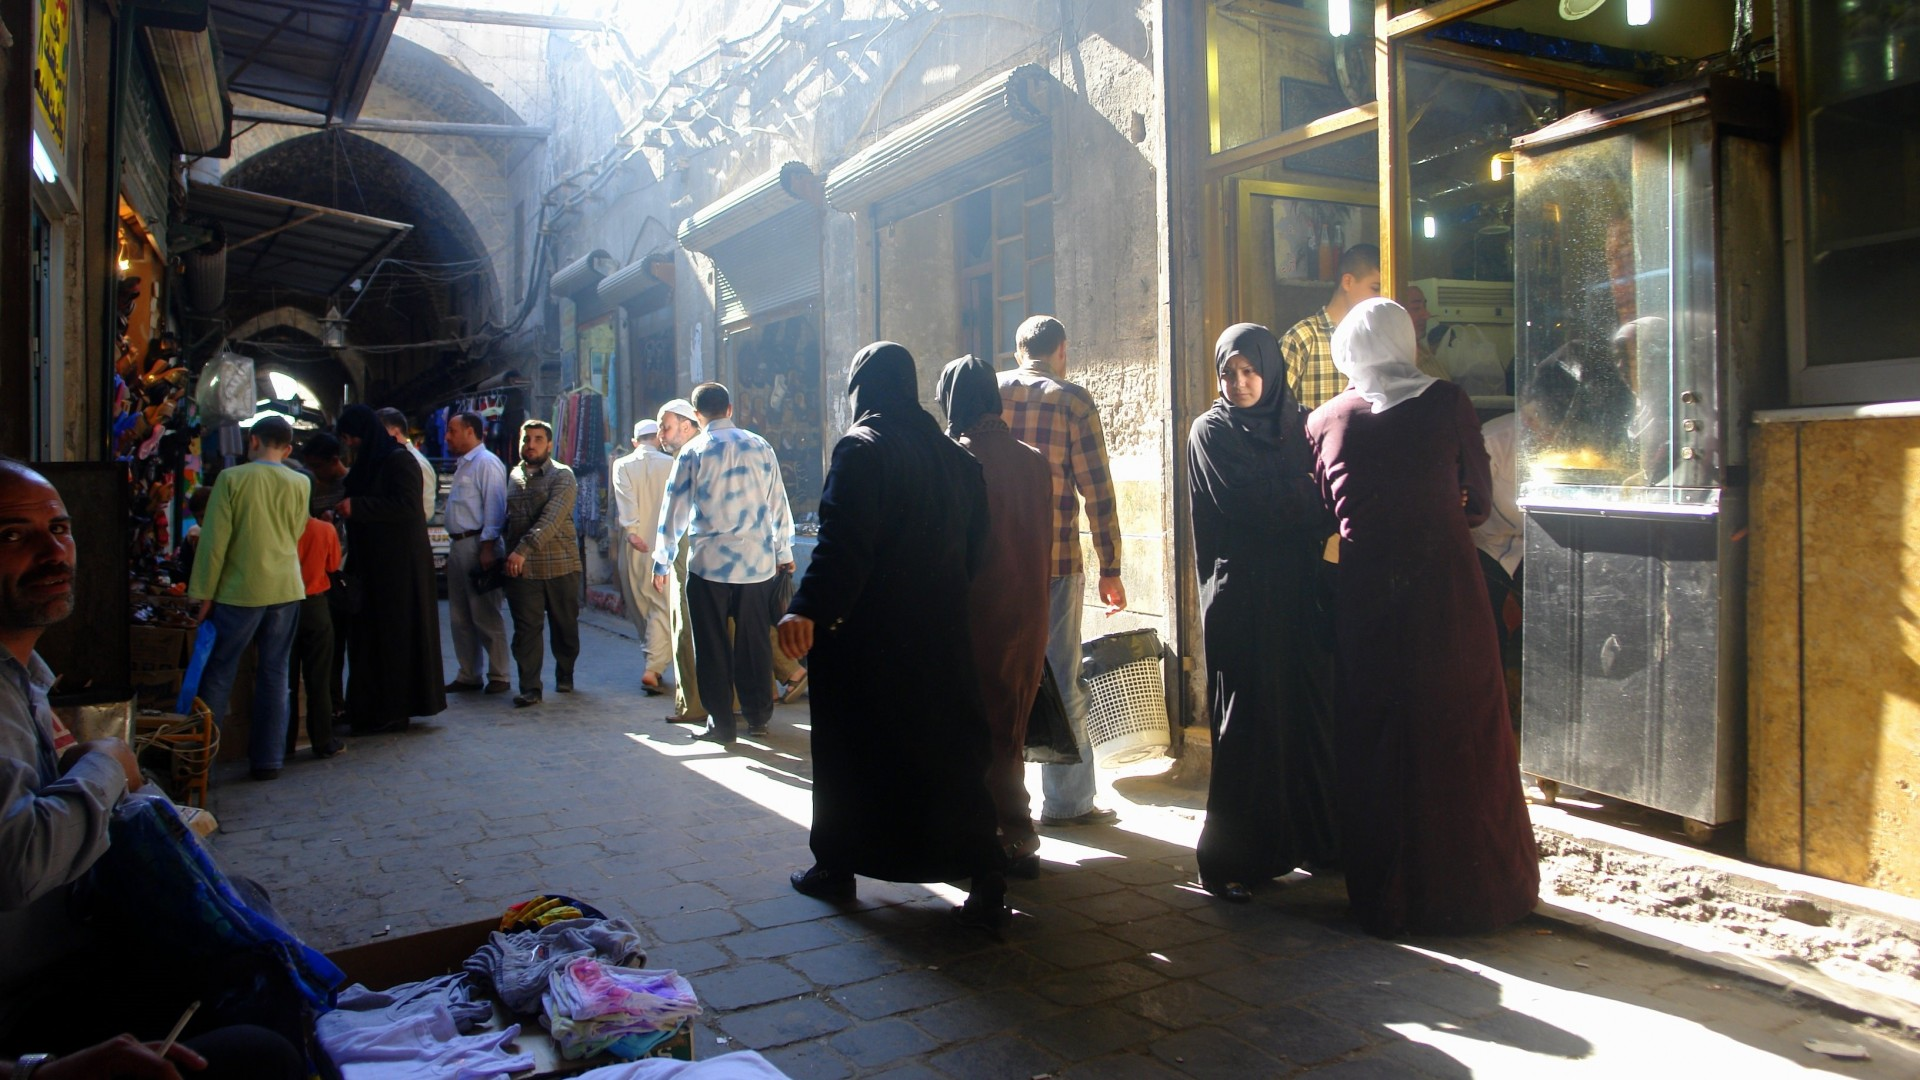 Aleppo bazaar. Photo: Charles Fred / Flickr.